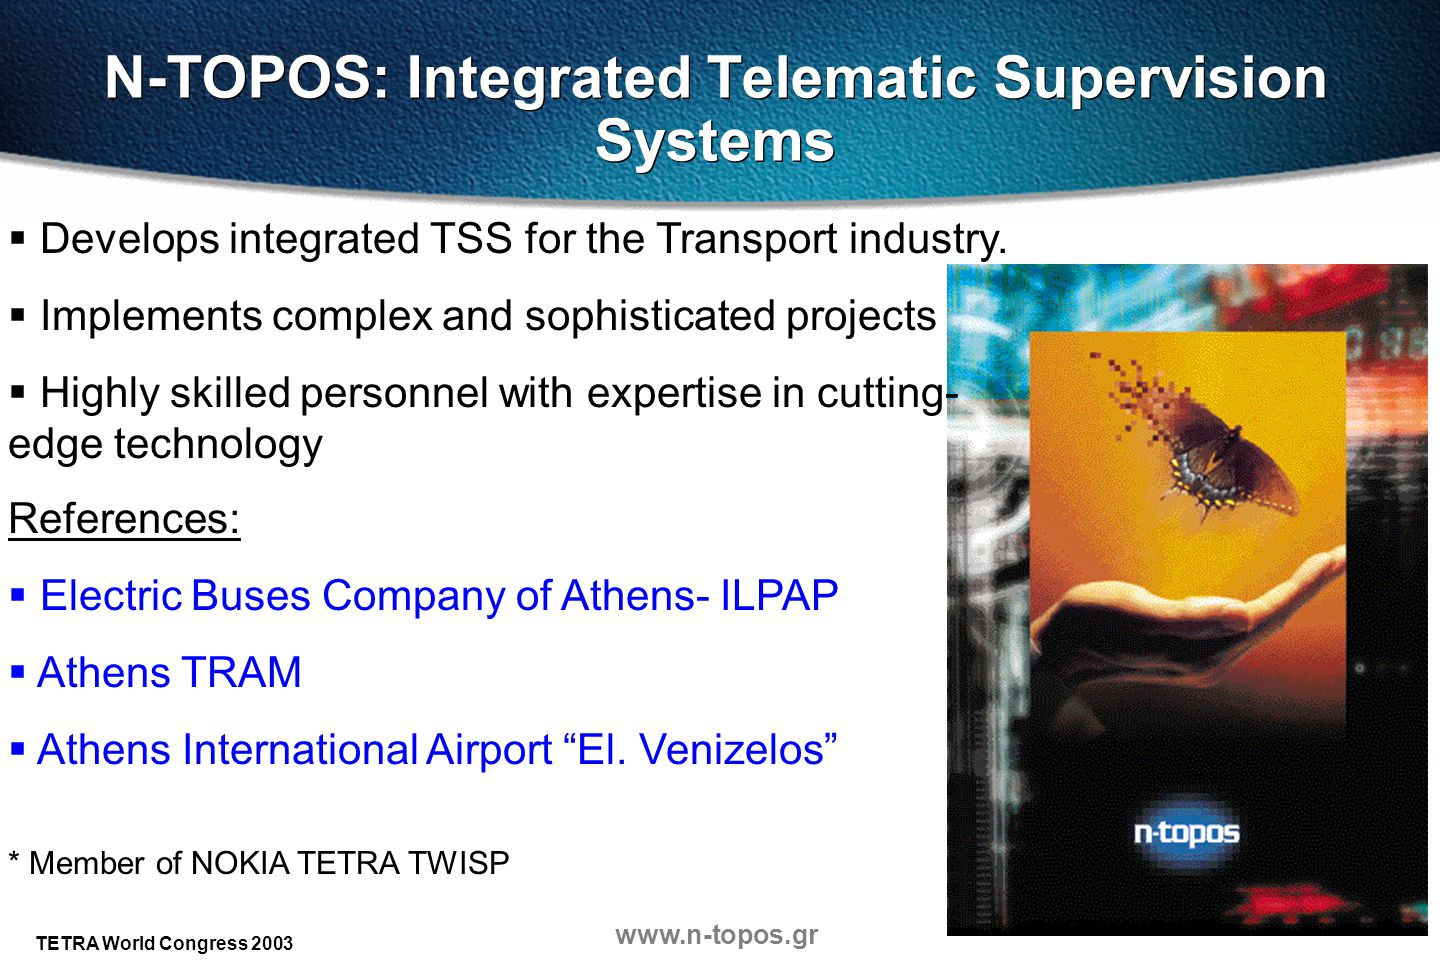 N-TOPOS: Integrated Telematic Supervision Systems